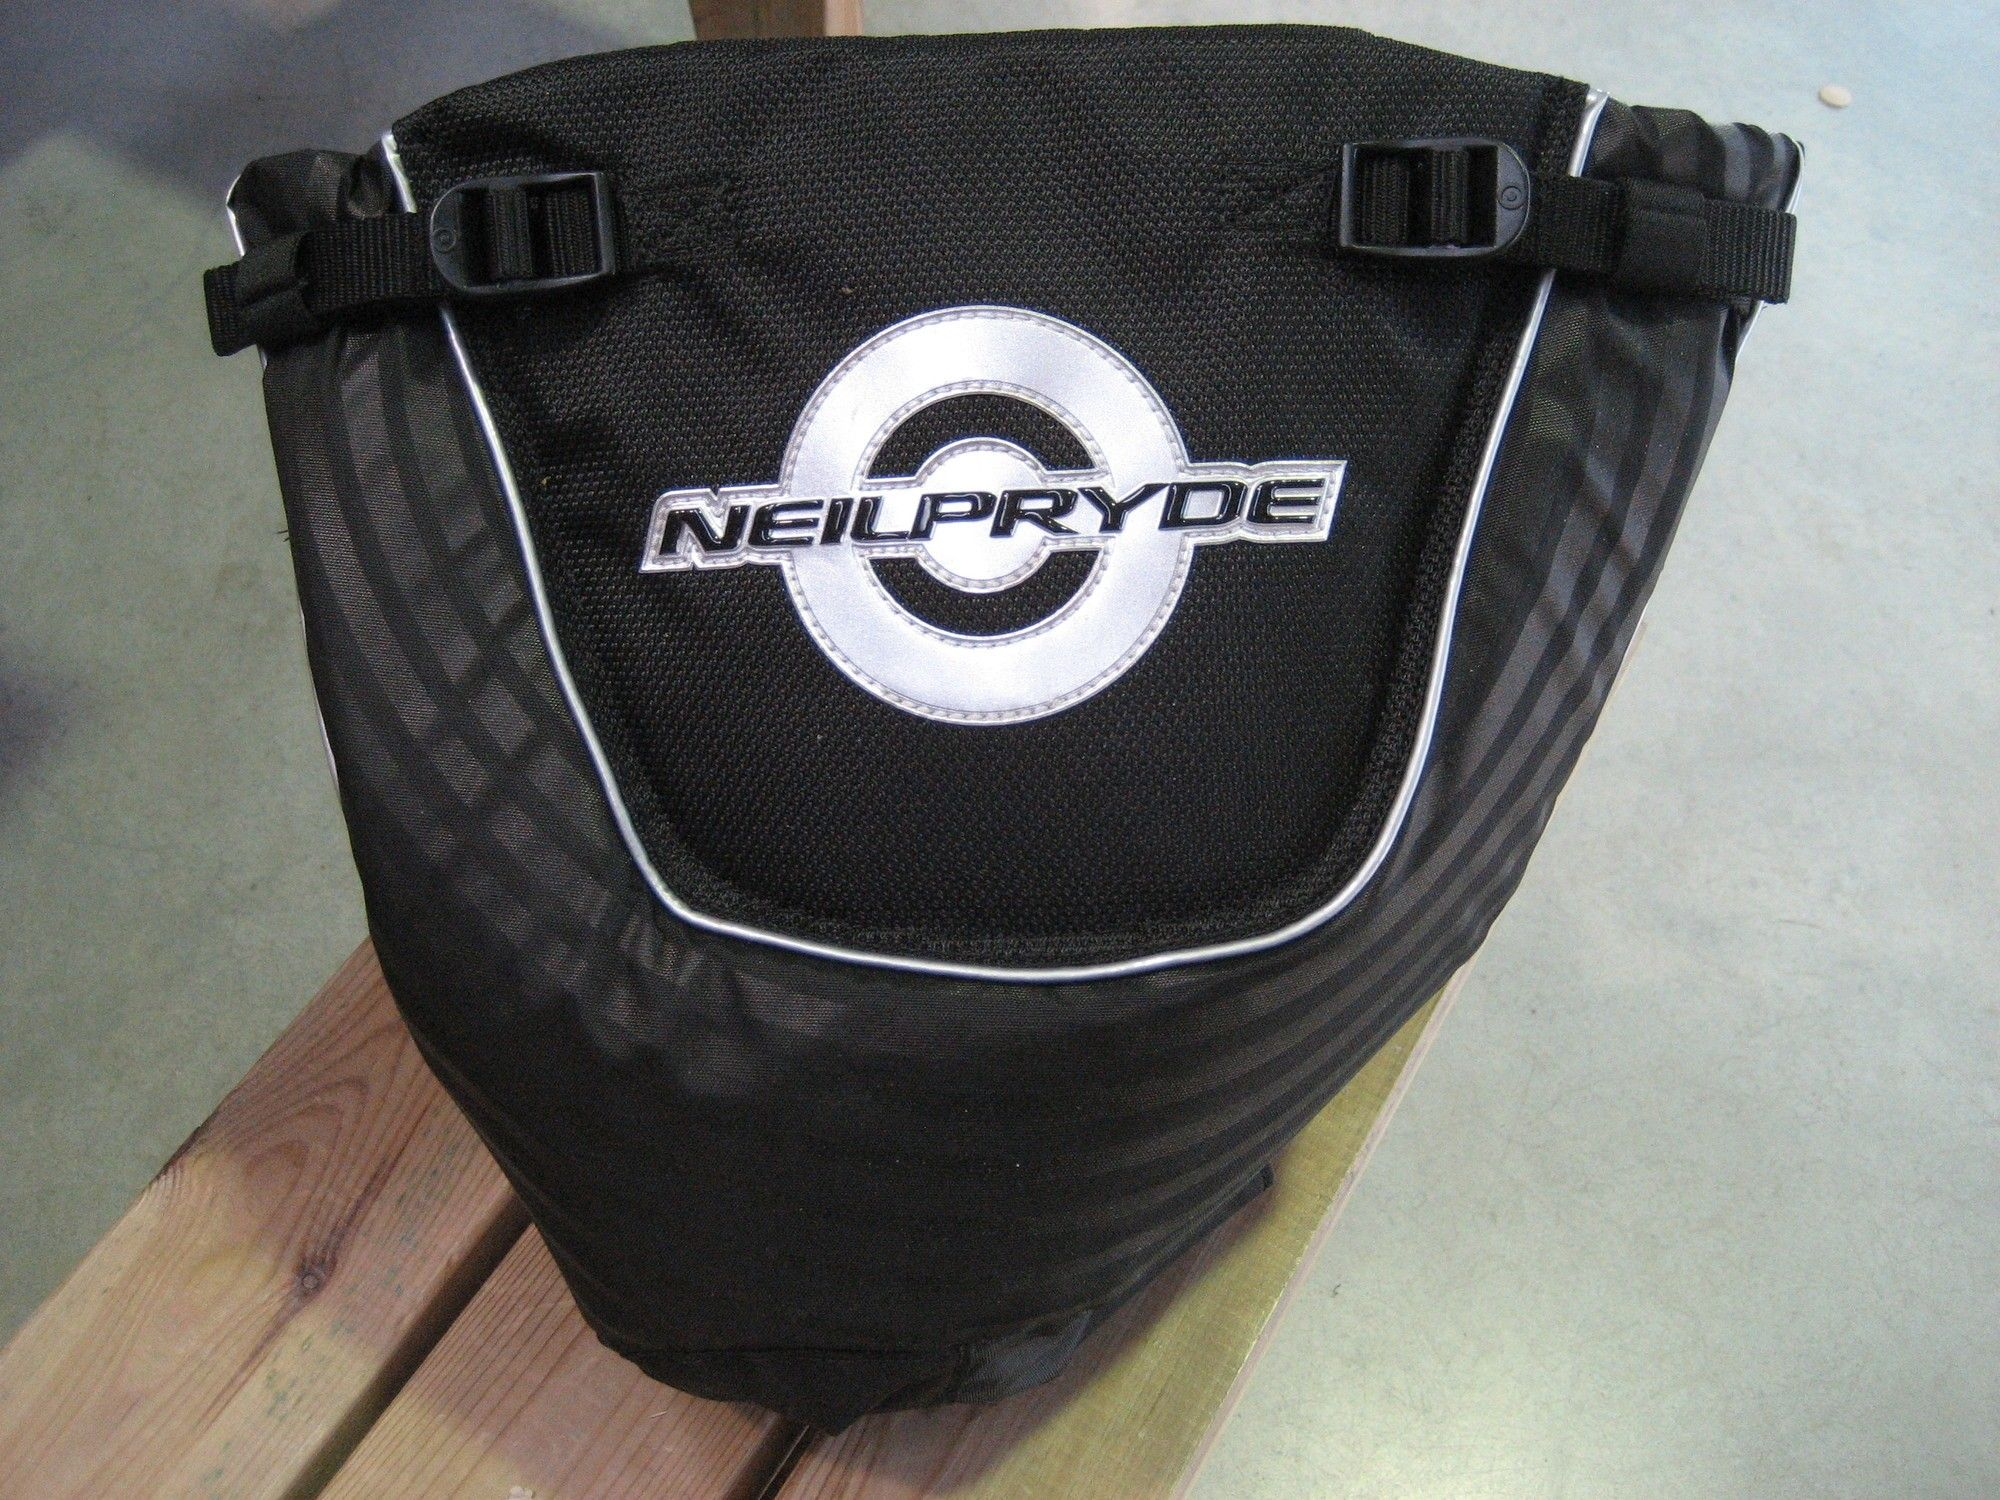 Neilpryde X-over Seat